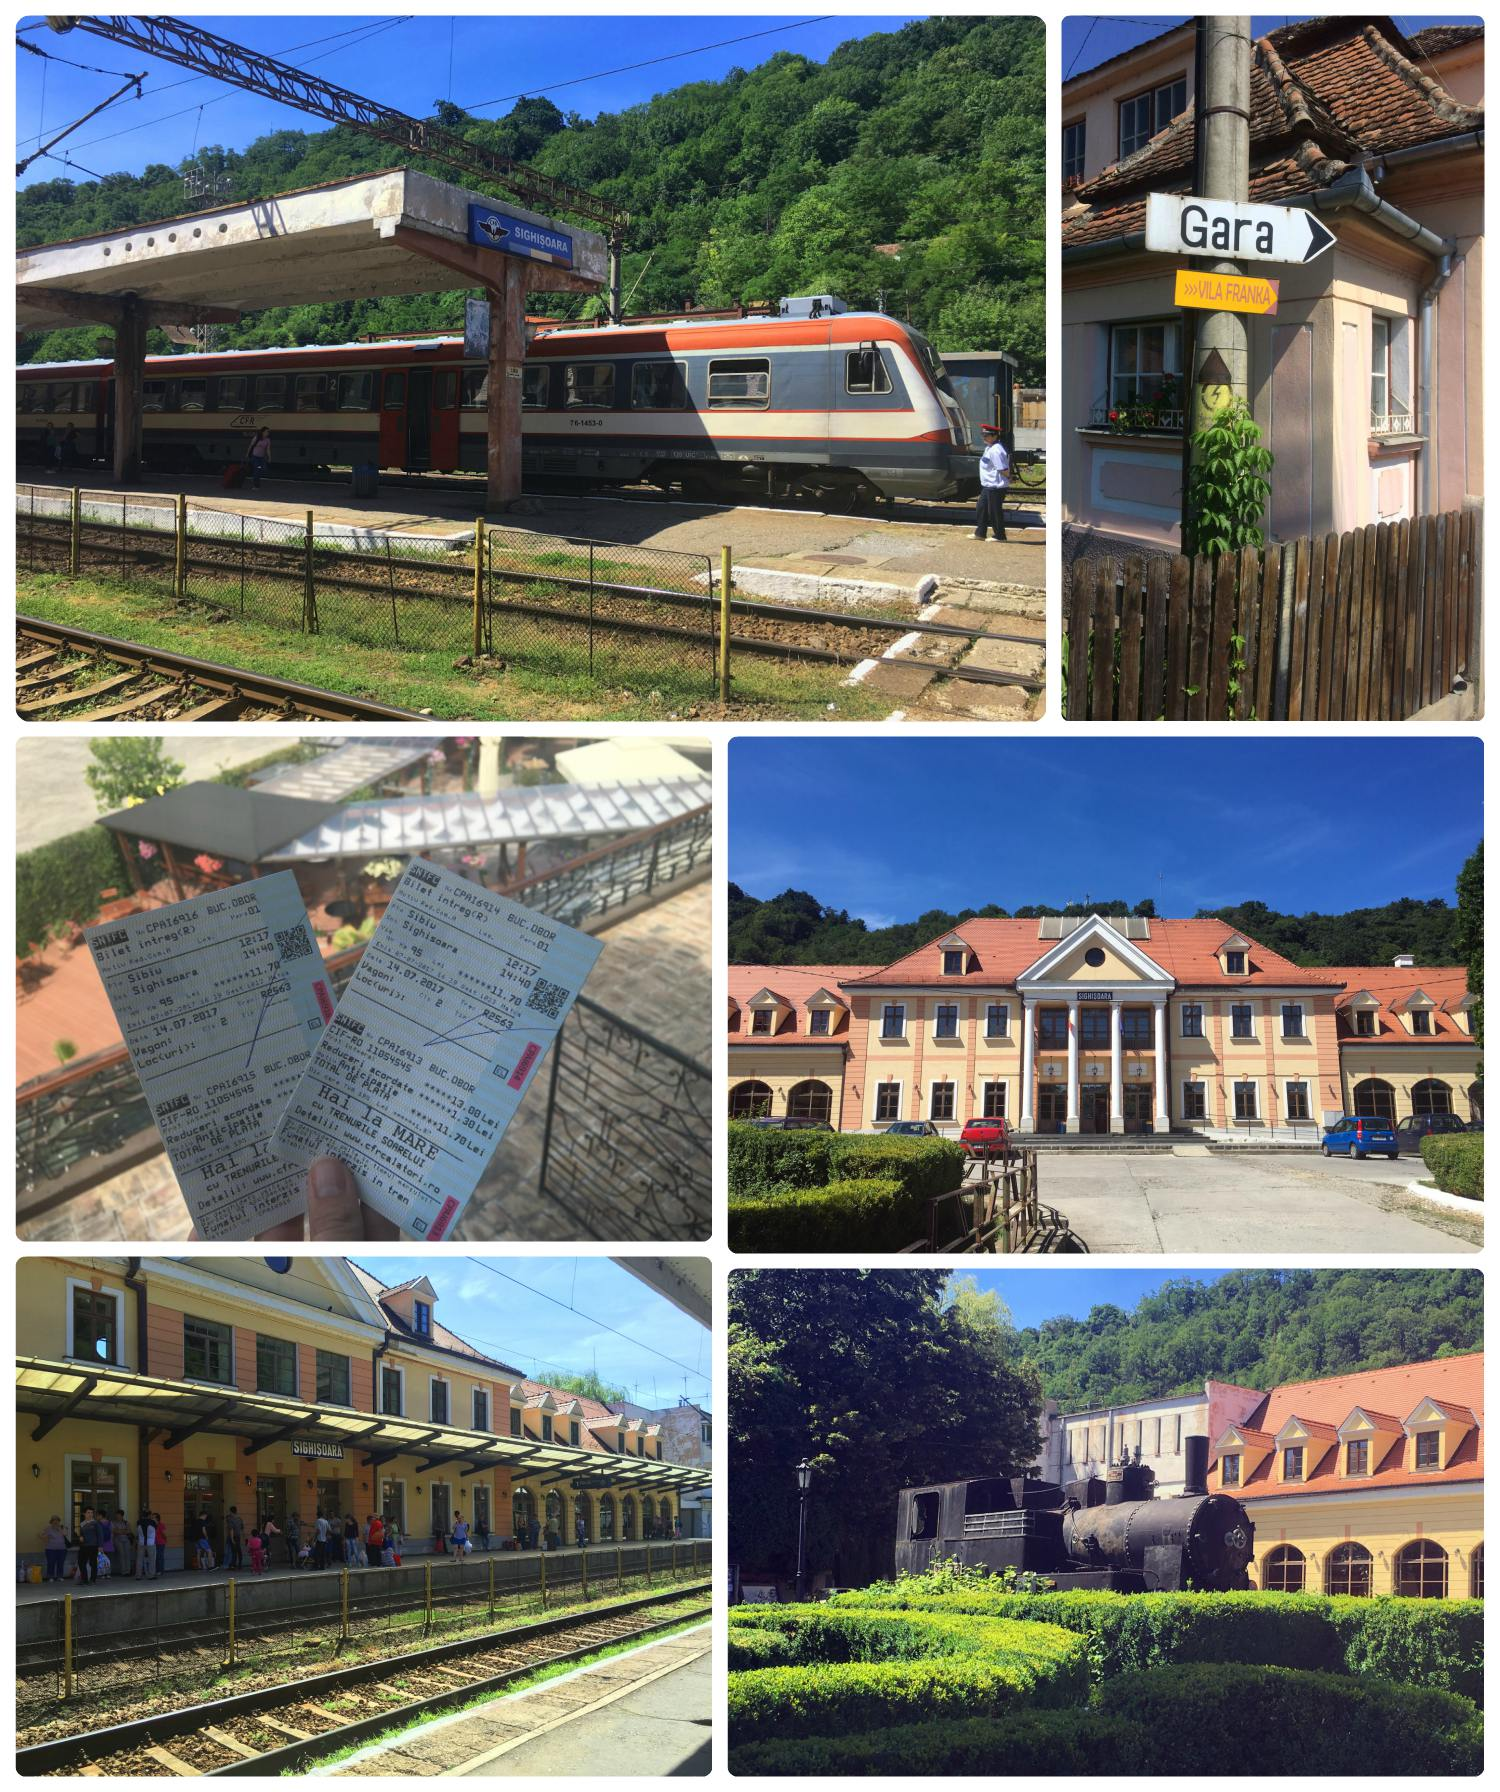 We've gotten used to traveling by train and often prefer it, so it's no surprise that we traveled through Transylvania, Romania by train! Clockwise (from the top): The train we took to Sighisoara, 'Gara' means train in Romanian, the front of the Sighisoara train station, an old train on display in front of the station, the back of the train station where people were waiting for the next train, our train tickets.